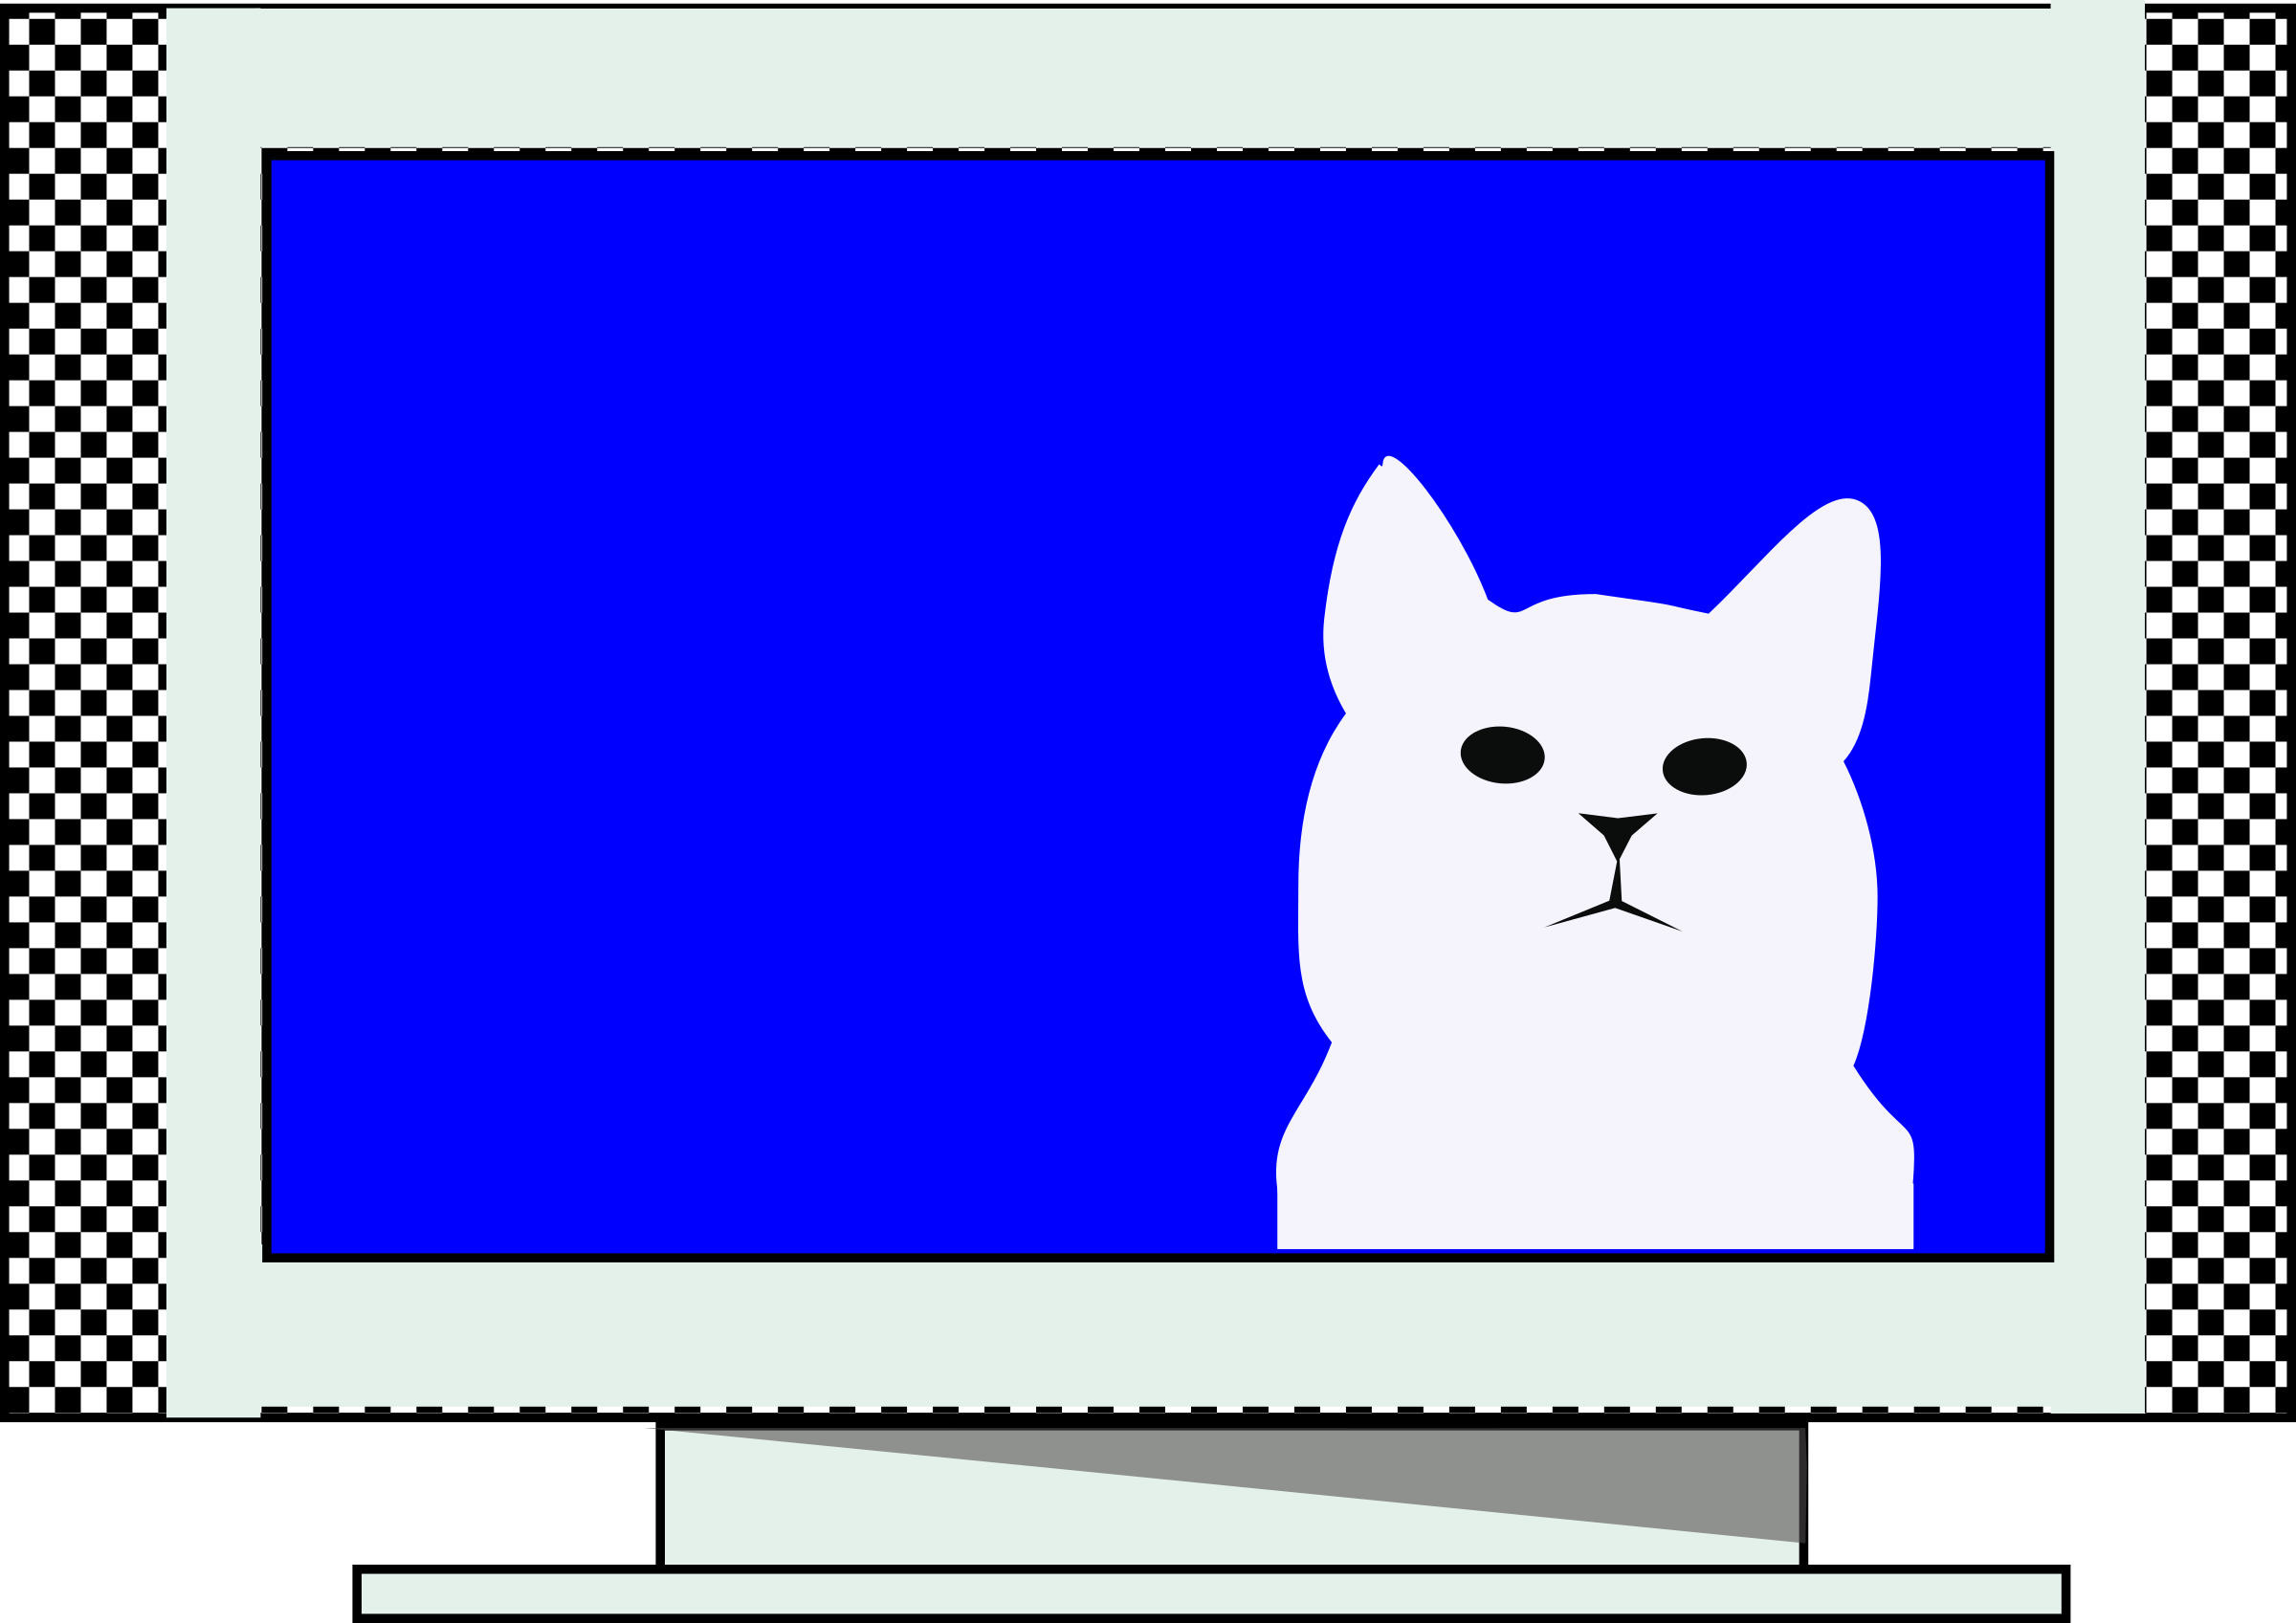 TV cat by user unknown